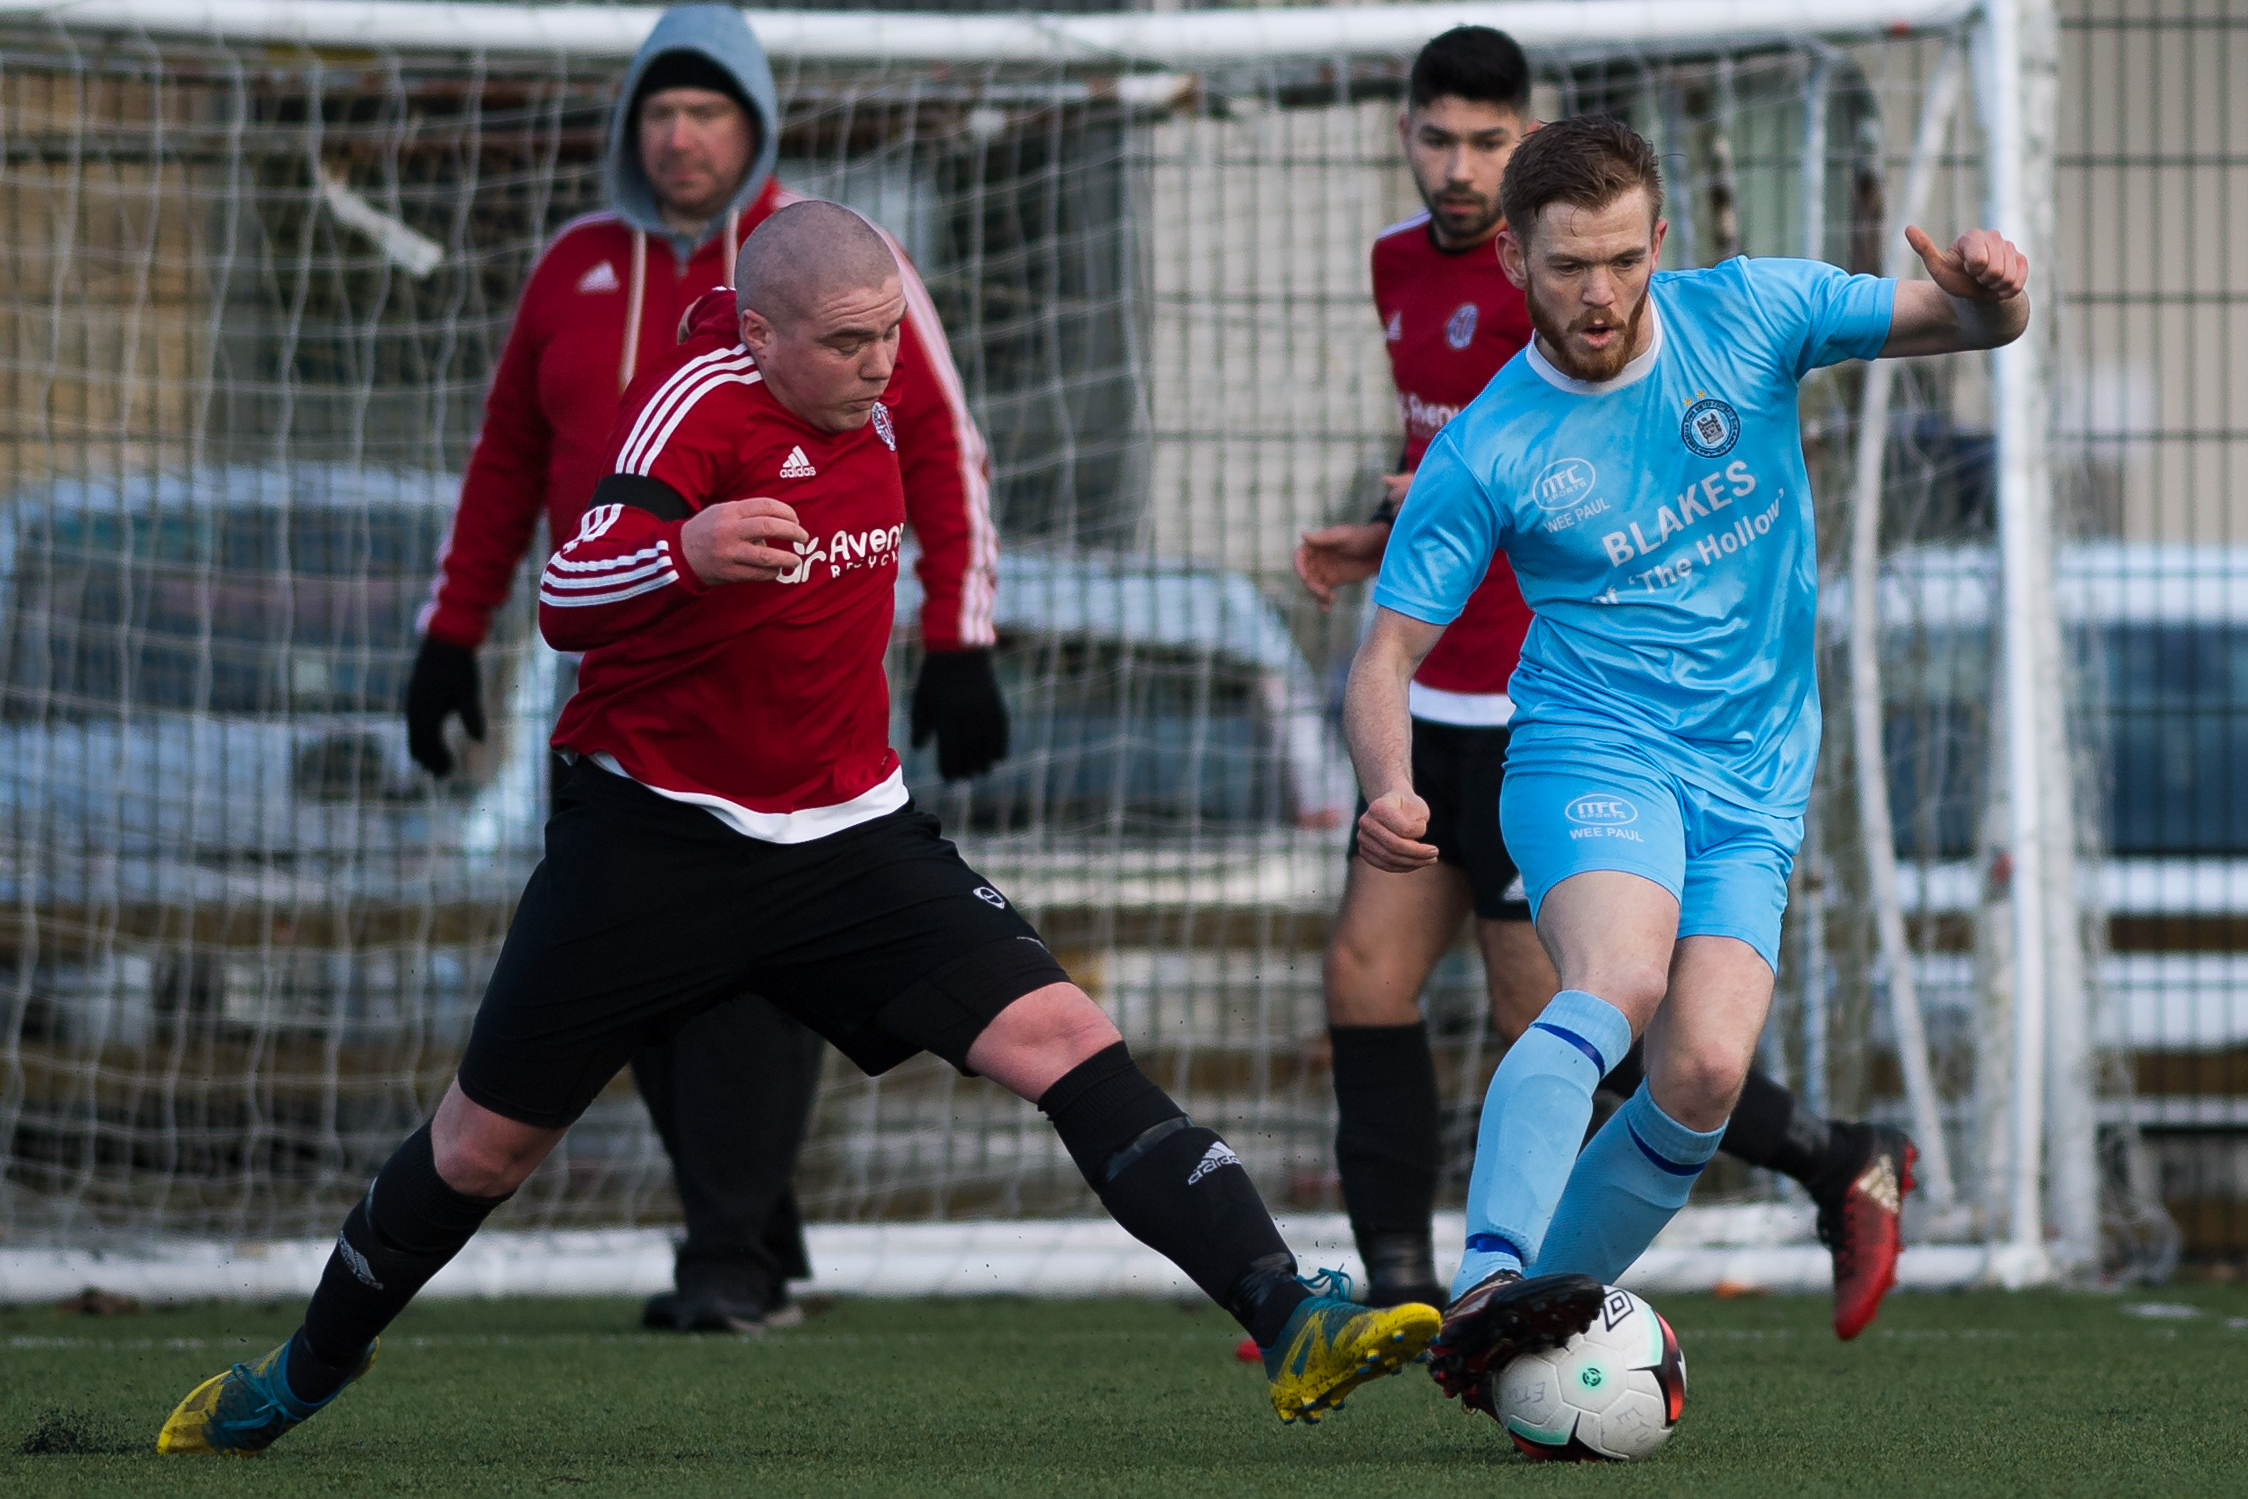 Stephen Clarke keeps control of the ball as Enniskillen Town lost to Willowbank II at the Lakeland Forum on Saturday.*